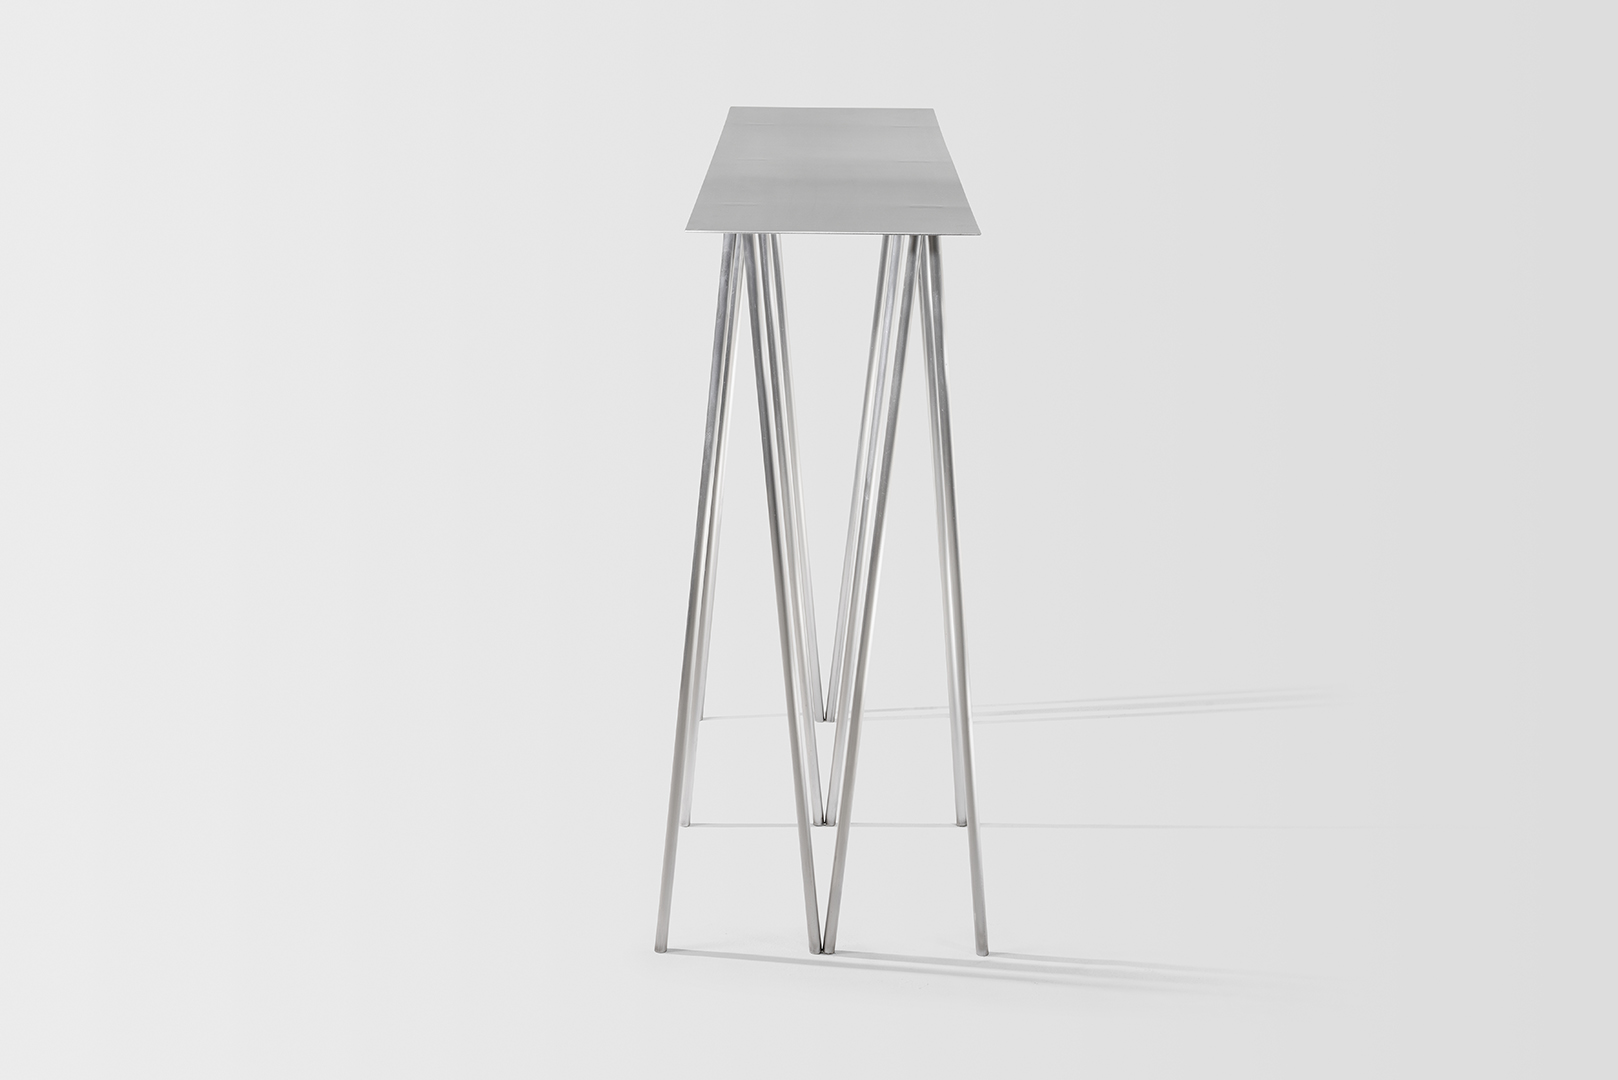 2018_PaperTable_Perspective_White_17.jpg